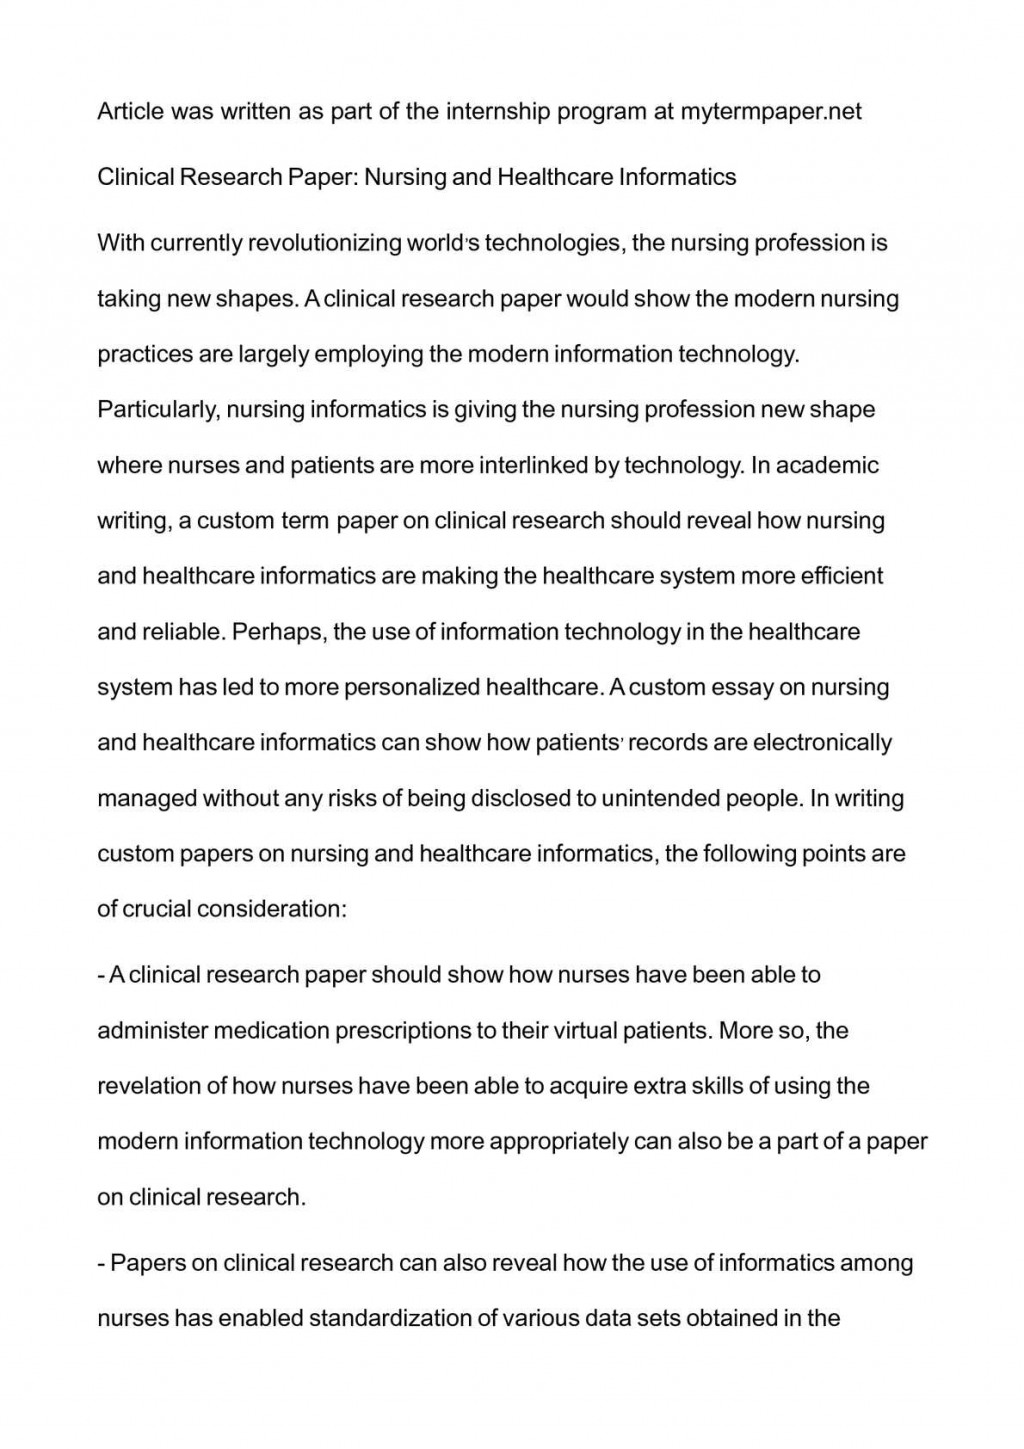 004 P1 Research Paper On Wondrous Nursing Topics Peer Reviewed Articles Shortage For Large